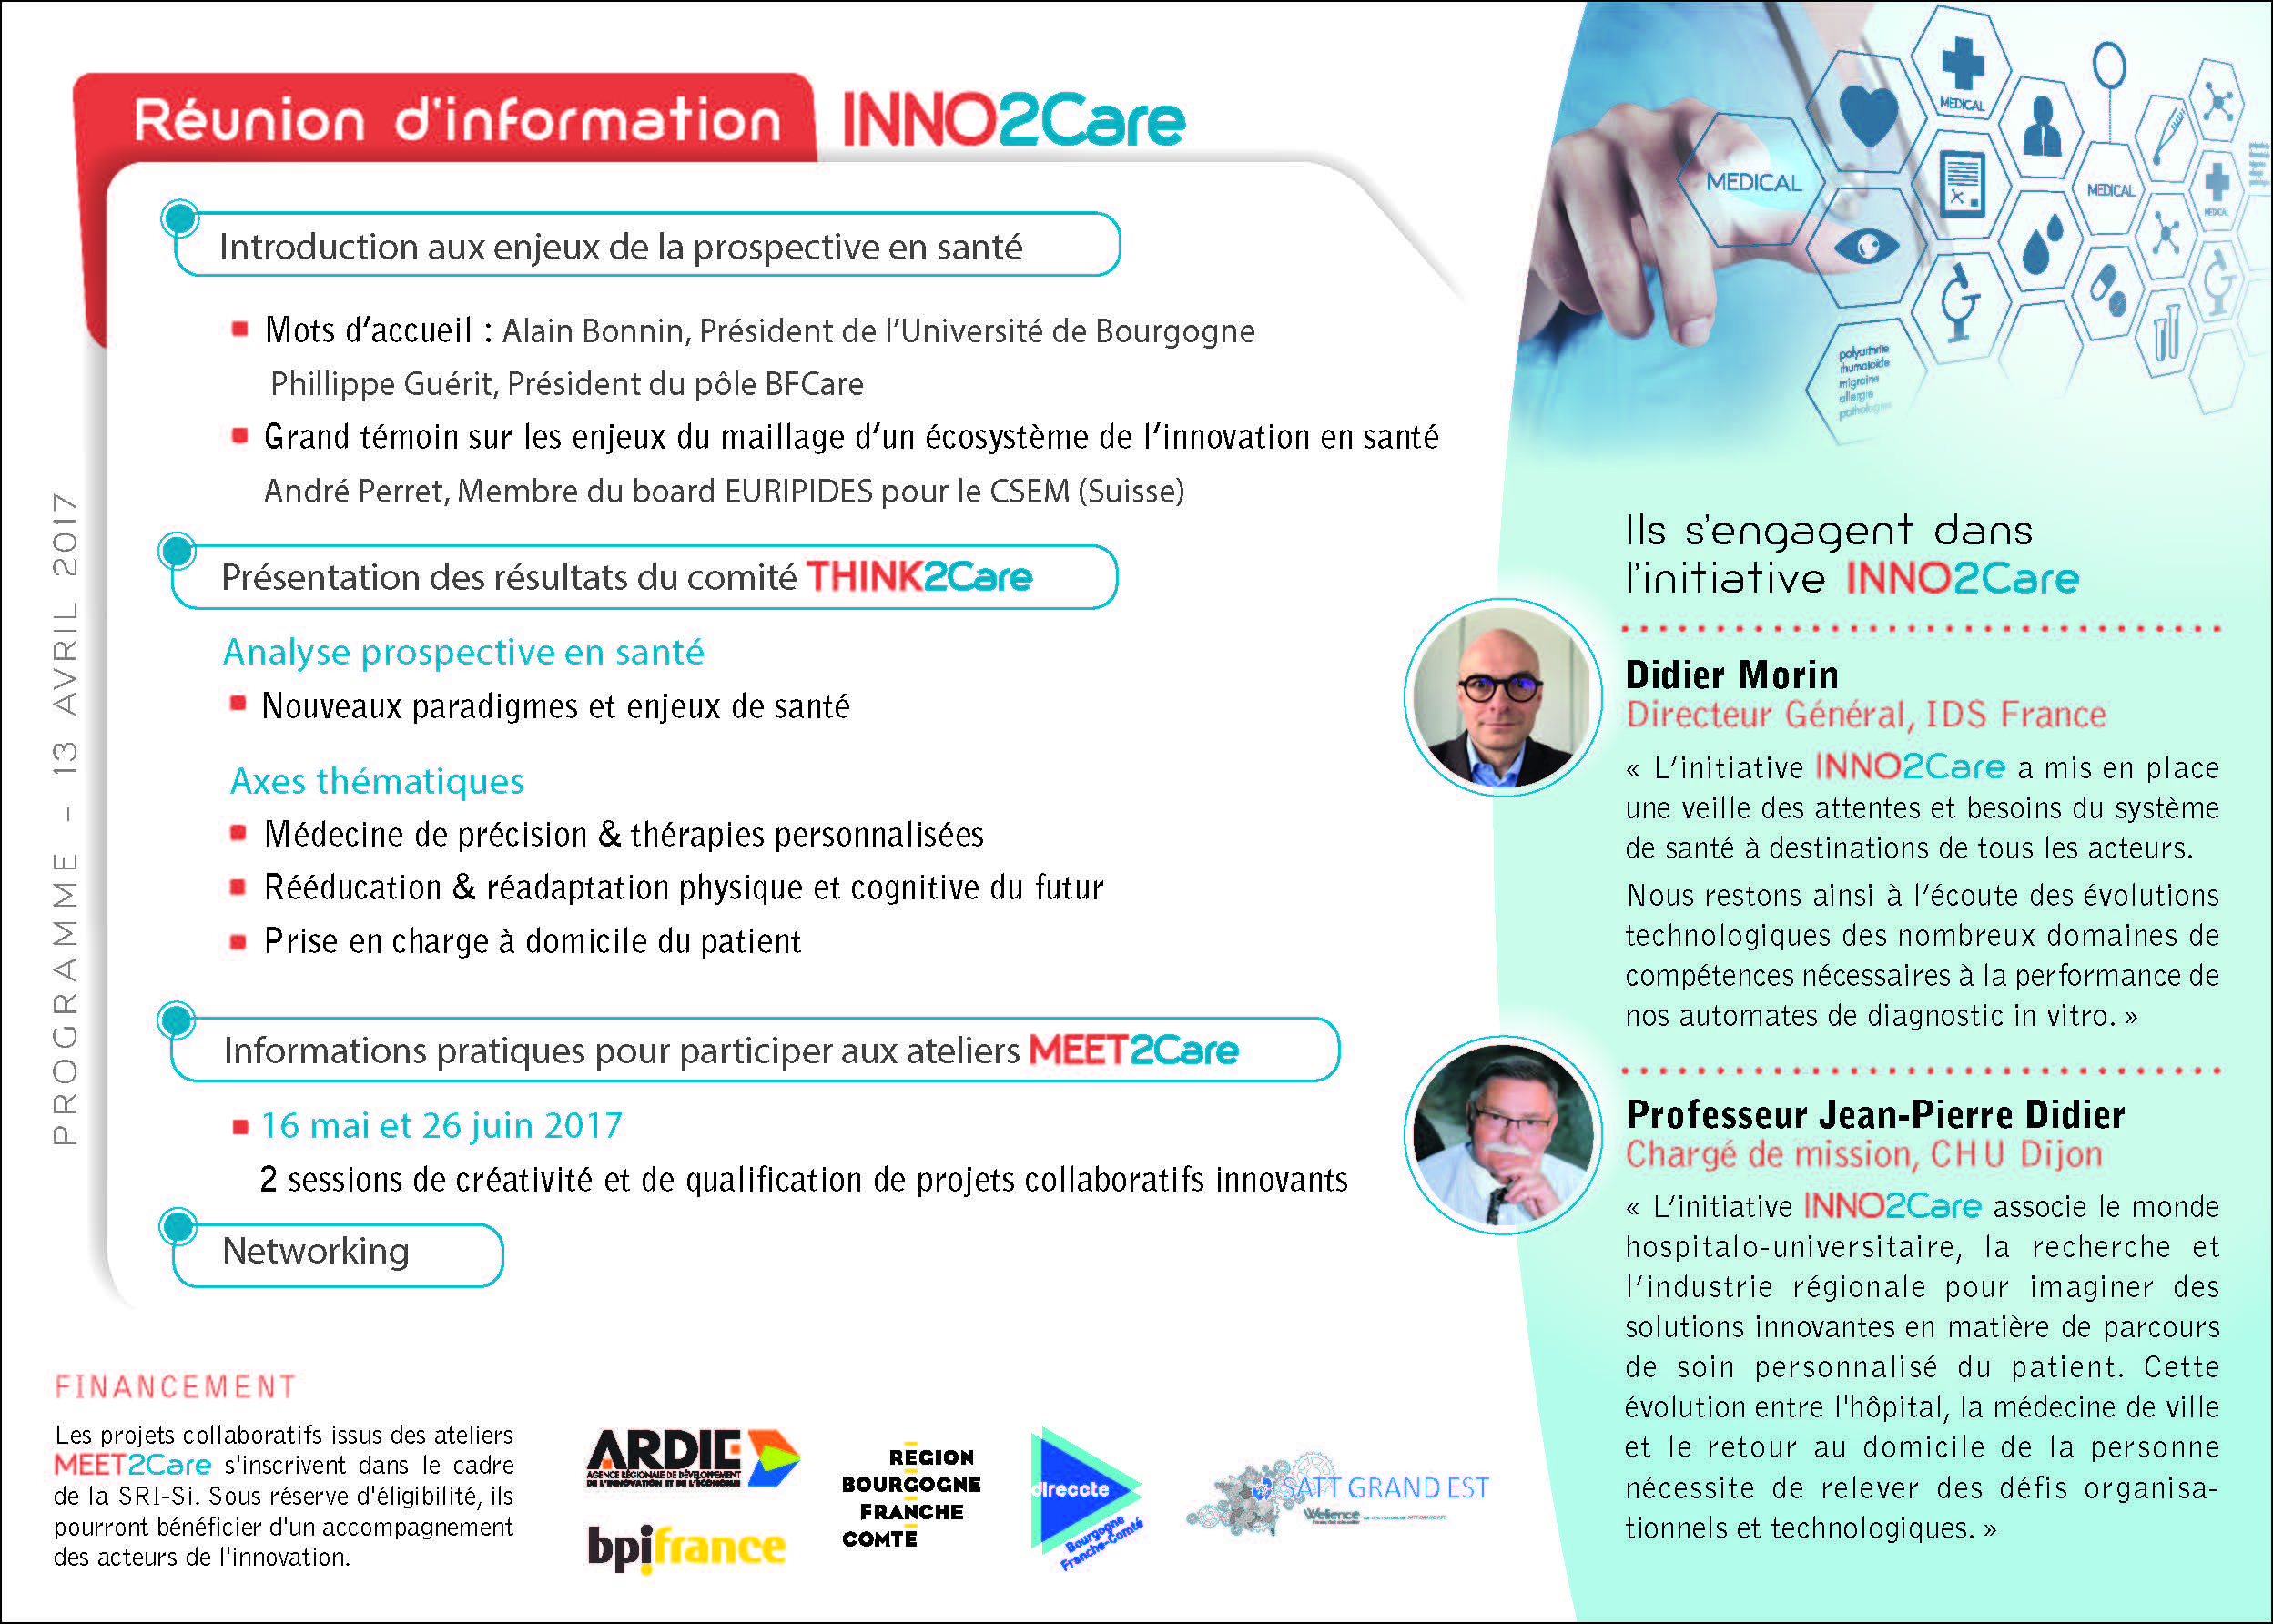 2Flyer INNO2Care 20170327 Page 2